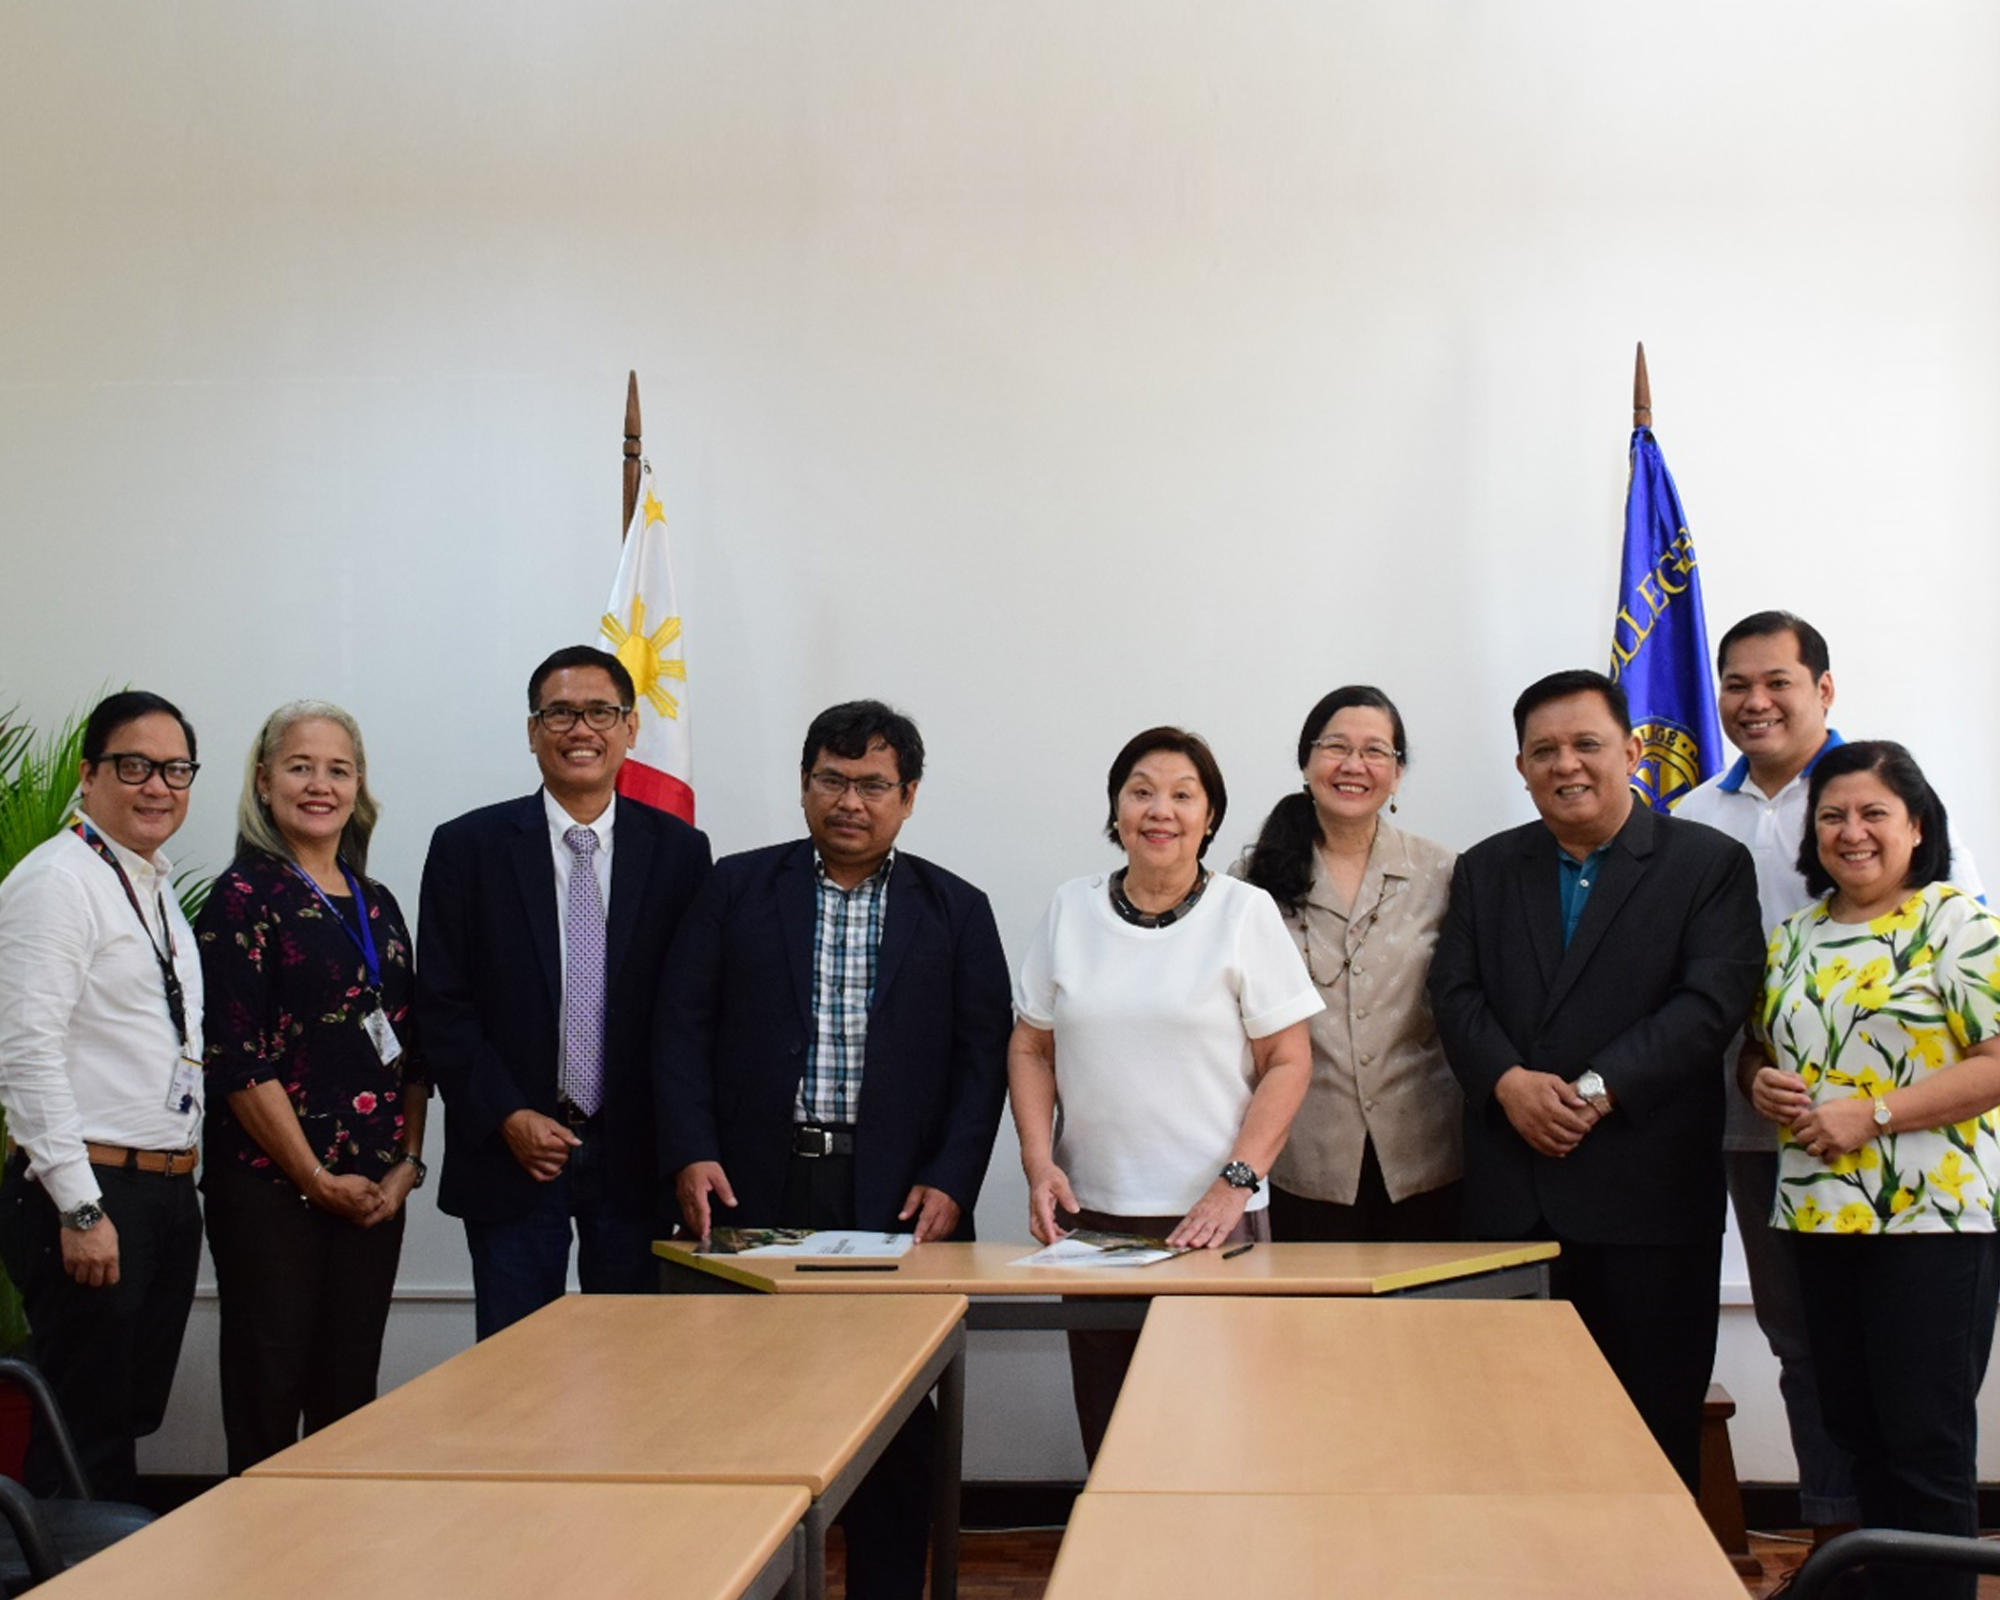 MC signs MOU with Atma Jaya Catholic University of Indonesia